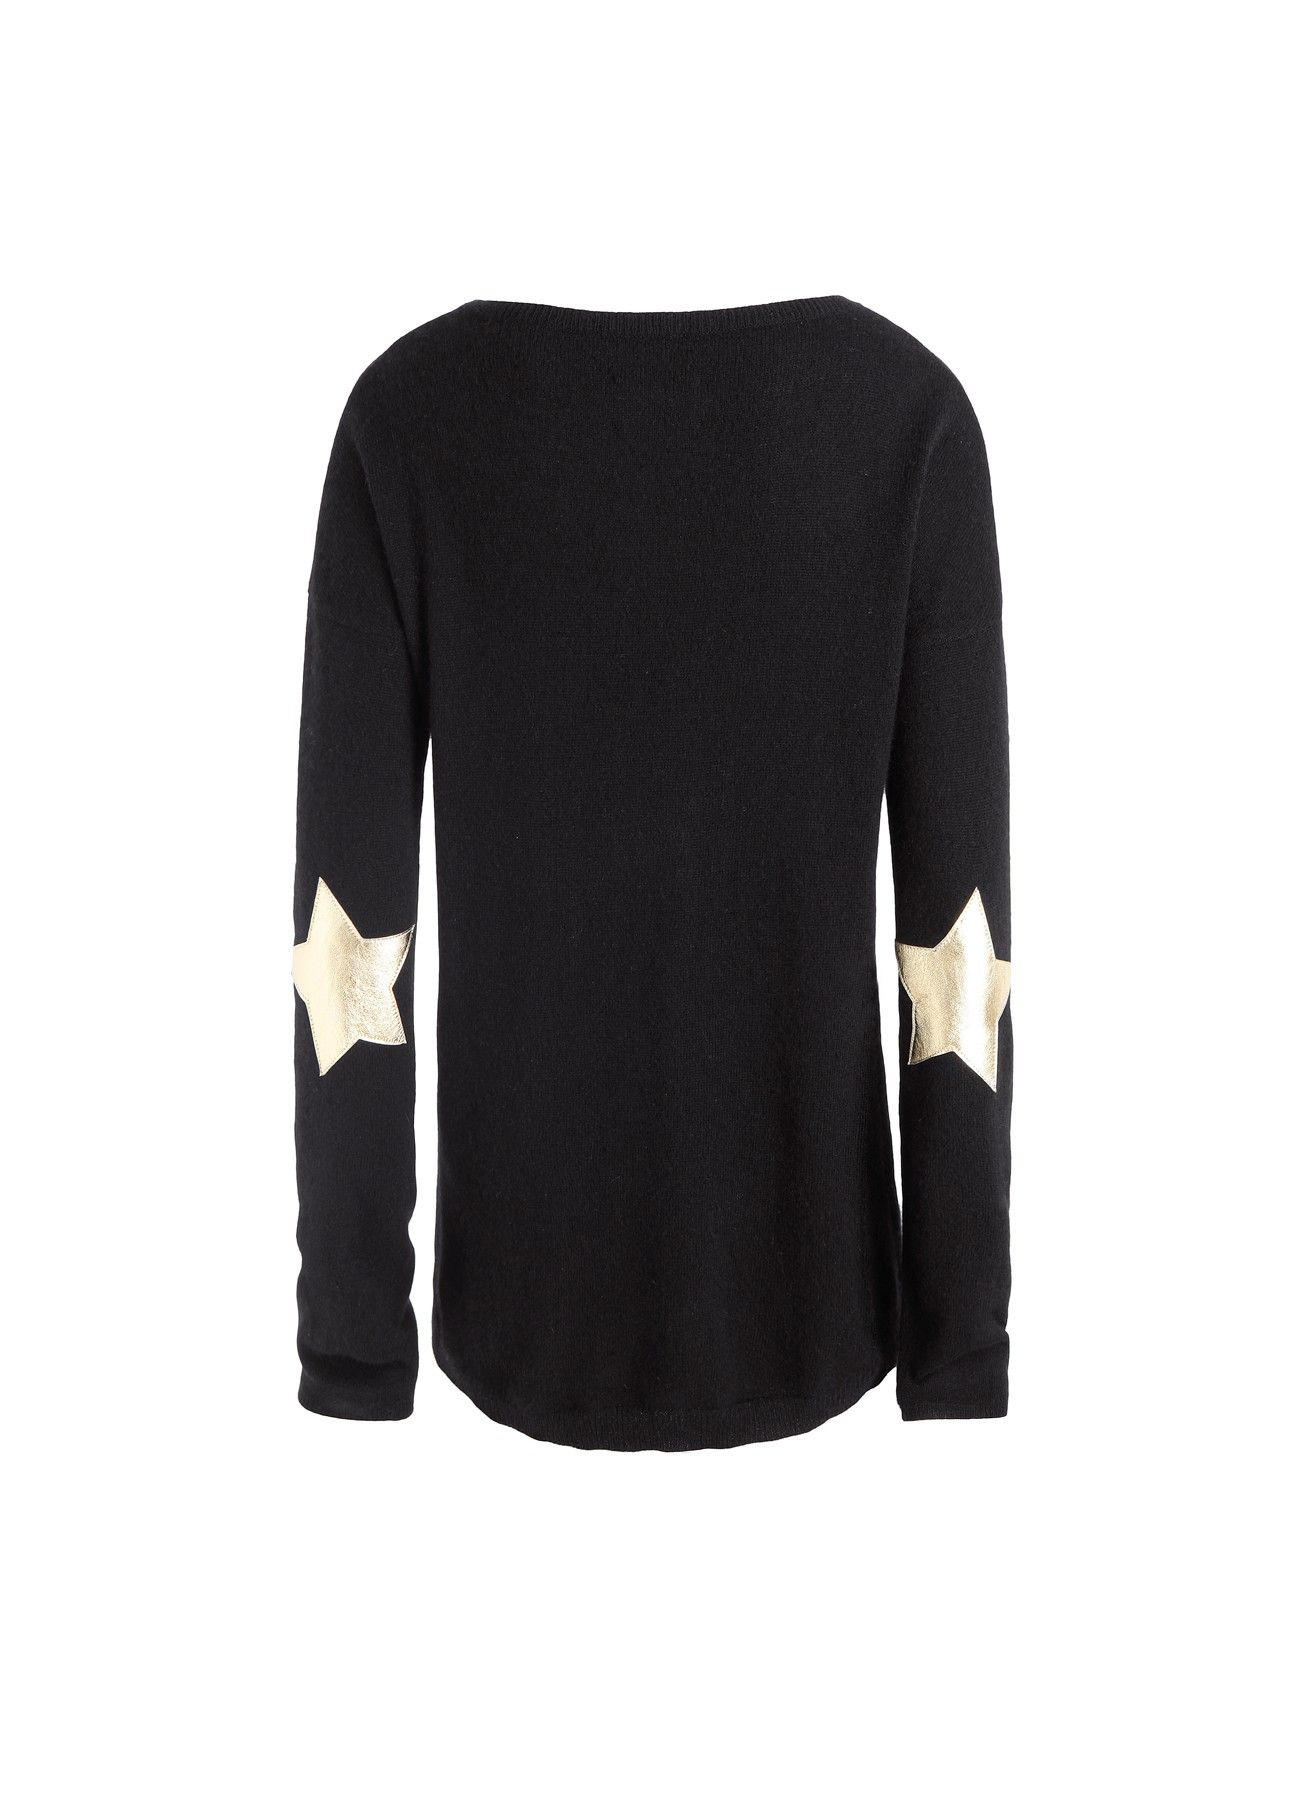 Ceci Patch C sweater from Zadie et Voltaire